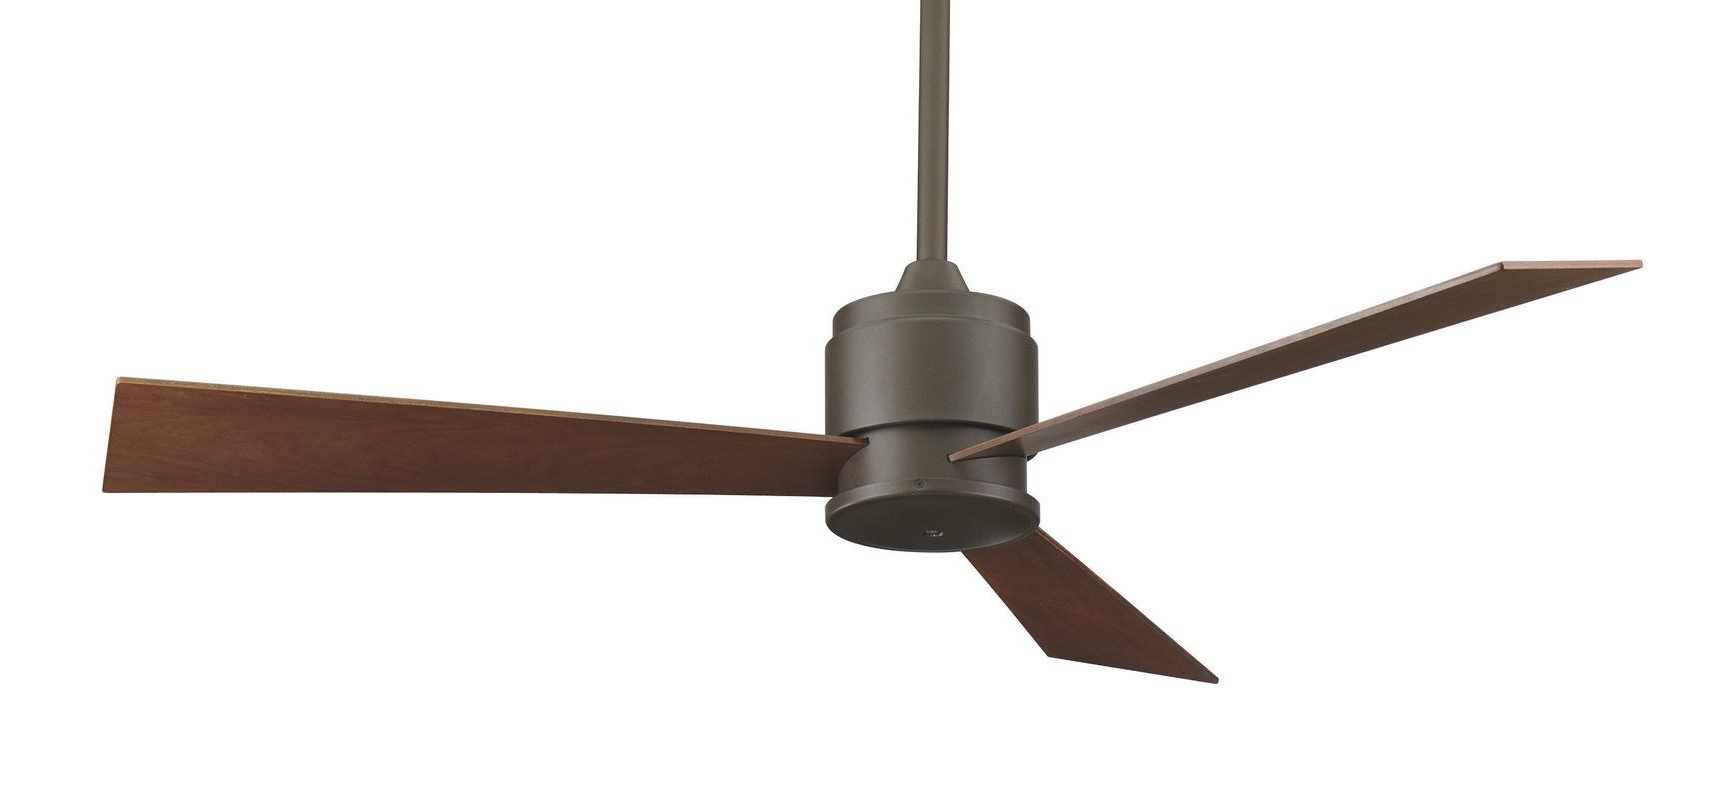 Sunnyside Bierman Residence Pertaining To 2020 Defelice 3 Blade Ceiling Fans (View 11 of 20)